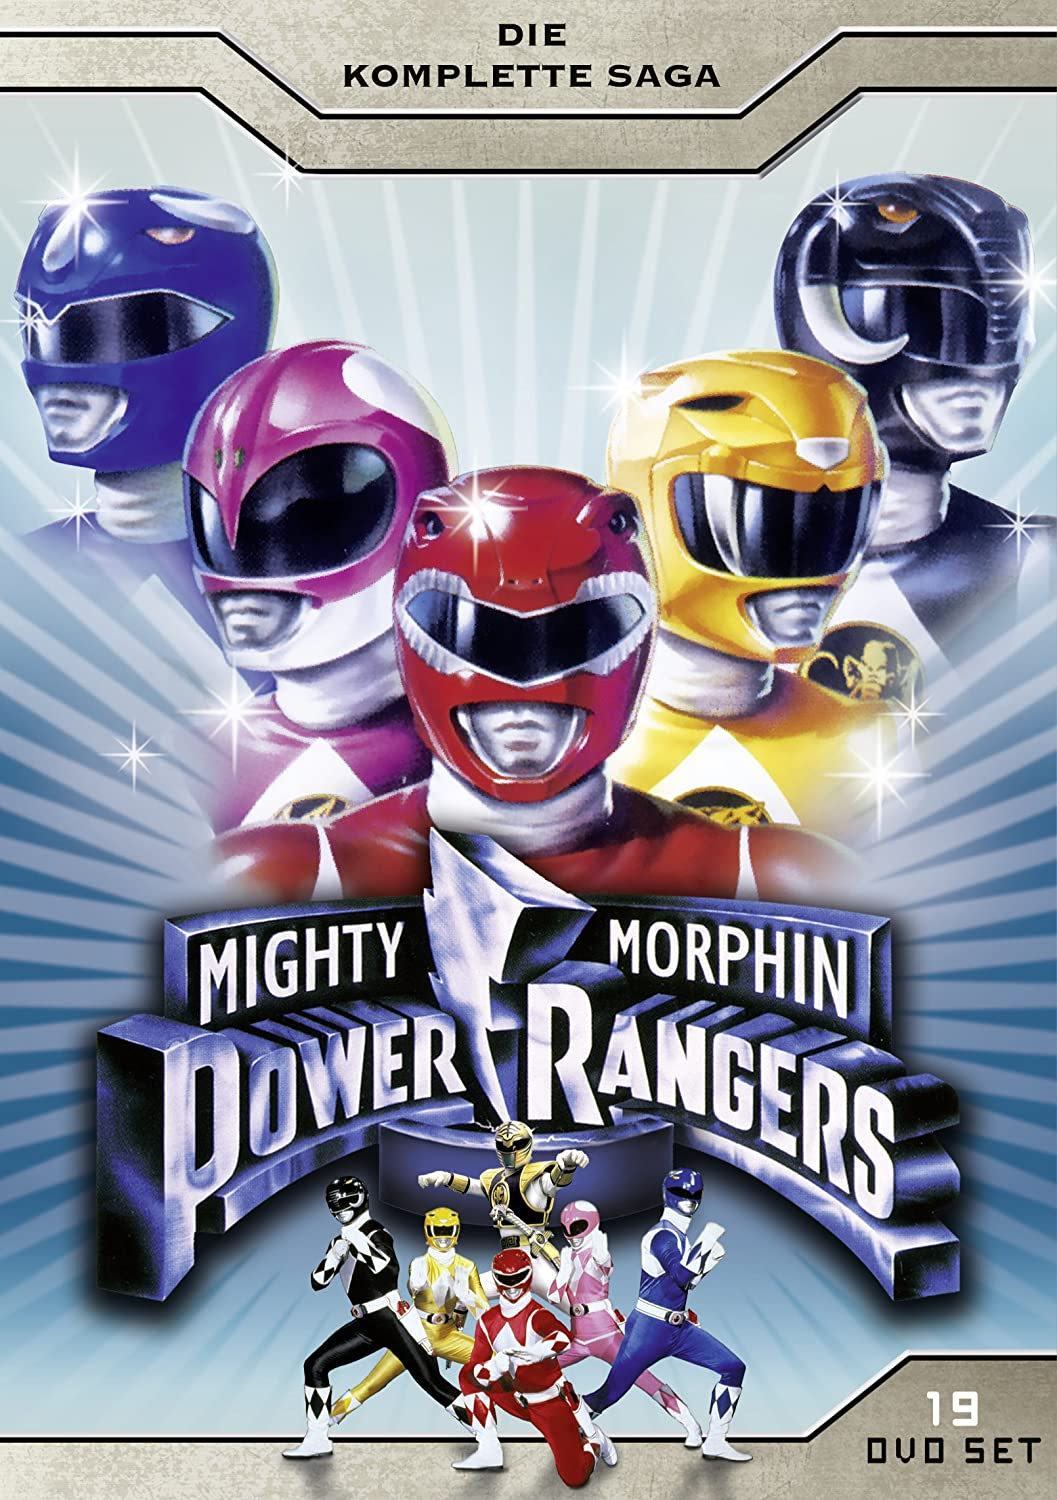 Mighty Morphin Power Rangers - Die komplette Saga 19 DVDs Alemania: Amazon.es: Austin St. John, Thuy Trang, Walter Jones, Jeffrey Reiner: Cine y Series TV